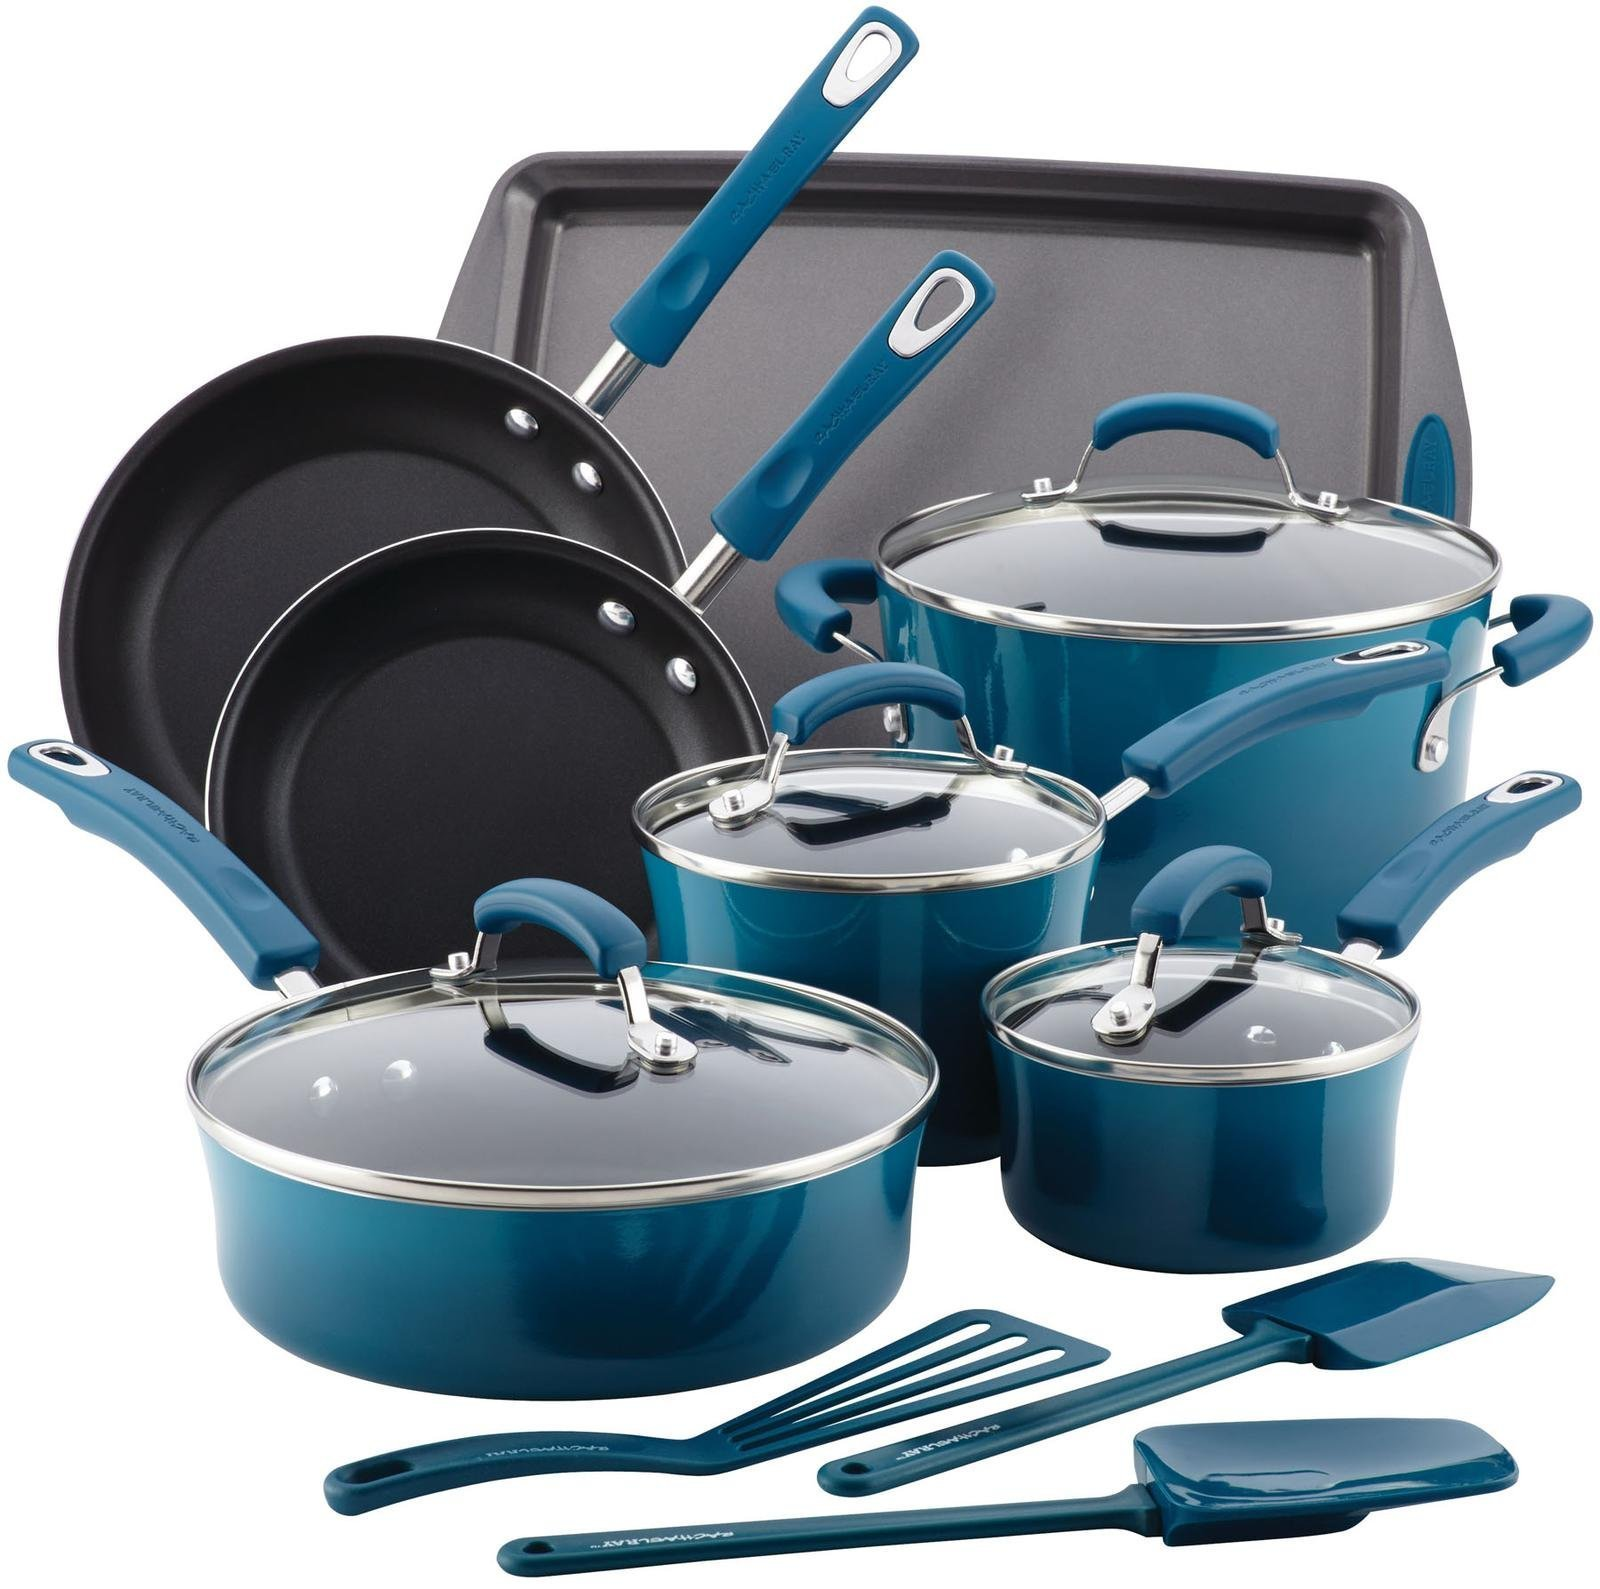 Rachael Ray 17626 14-Piece Aluminum Cookware Set, Marine Blue by Rachael Ray (Image #1)